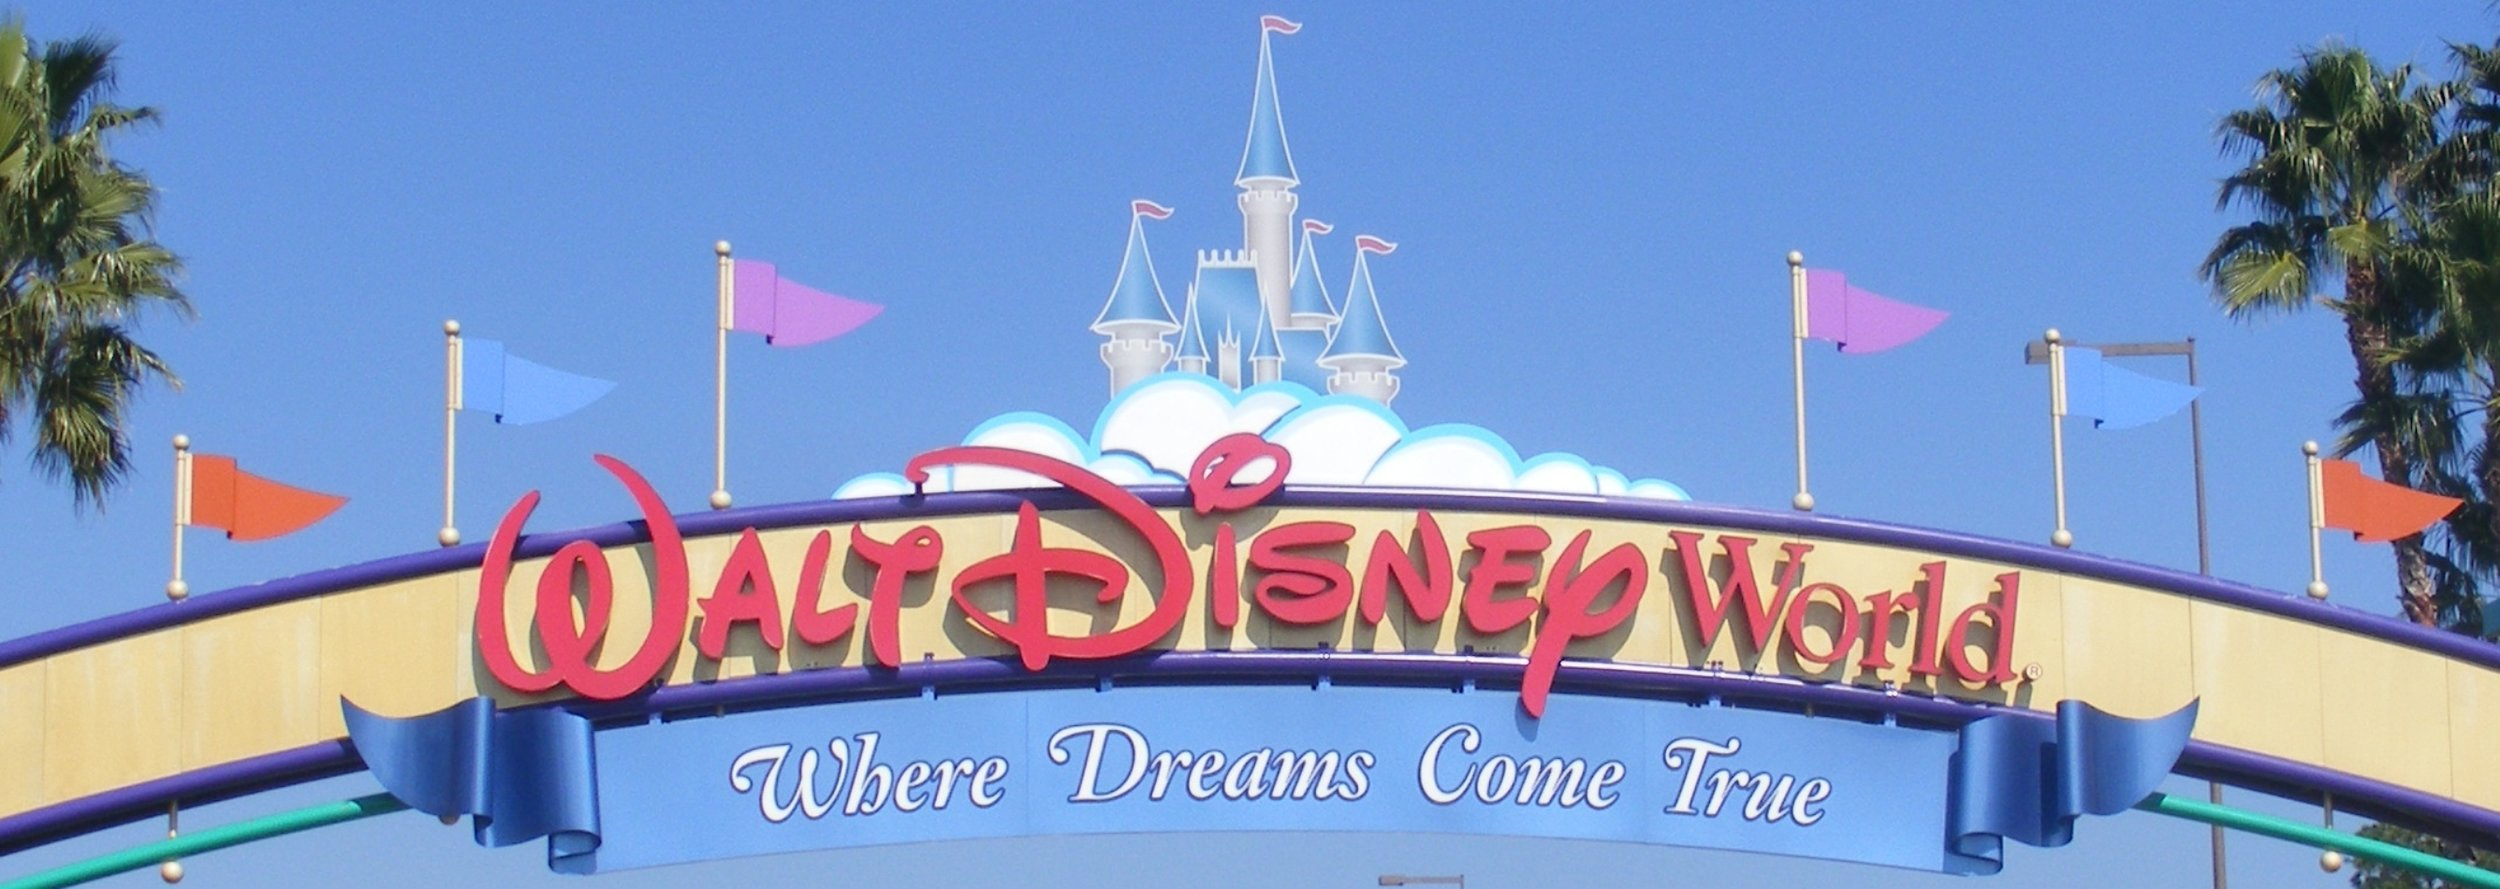 Walt Disney World Entrance Sign.jpg